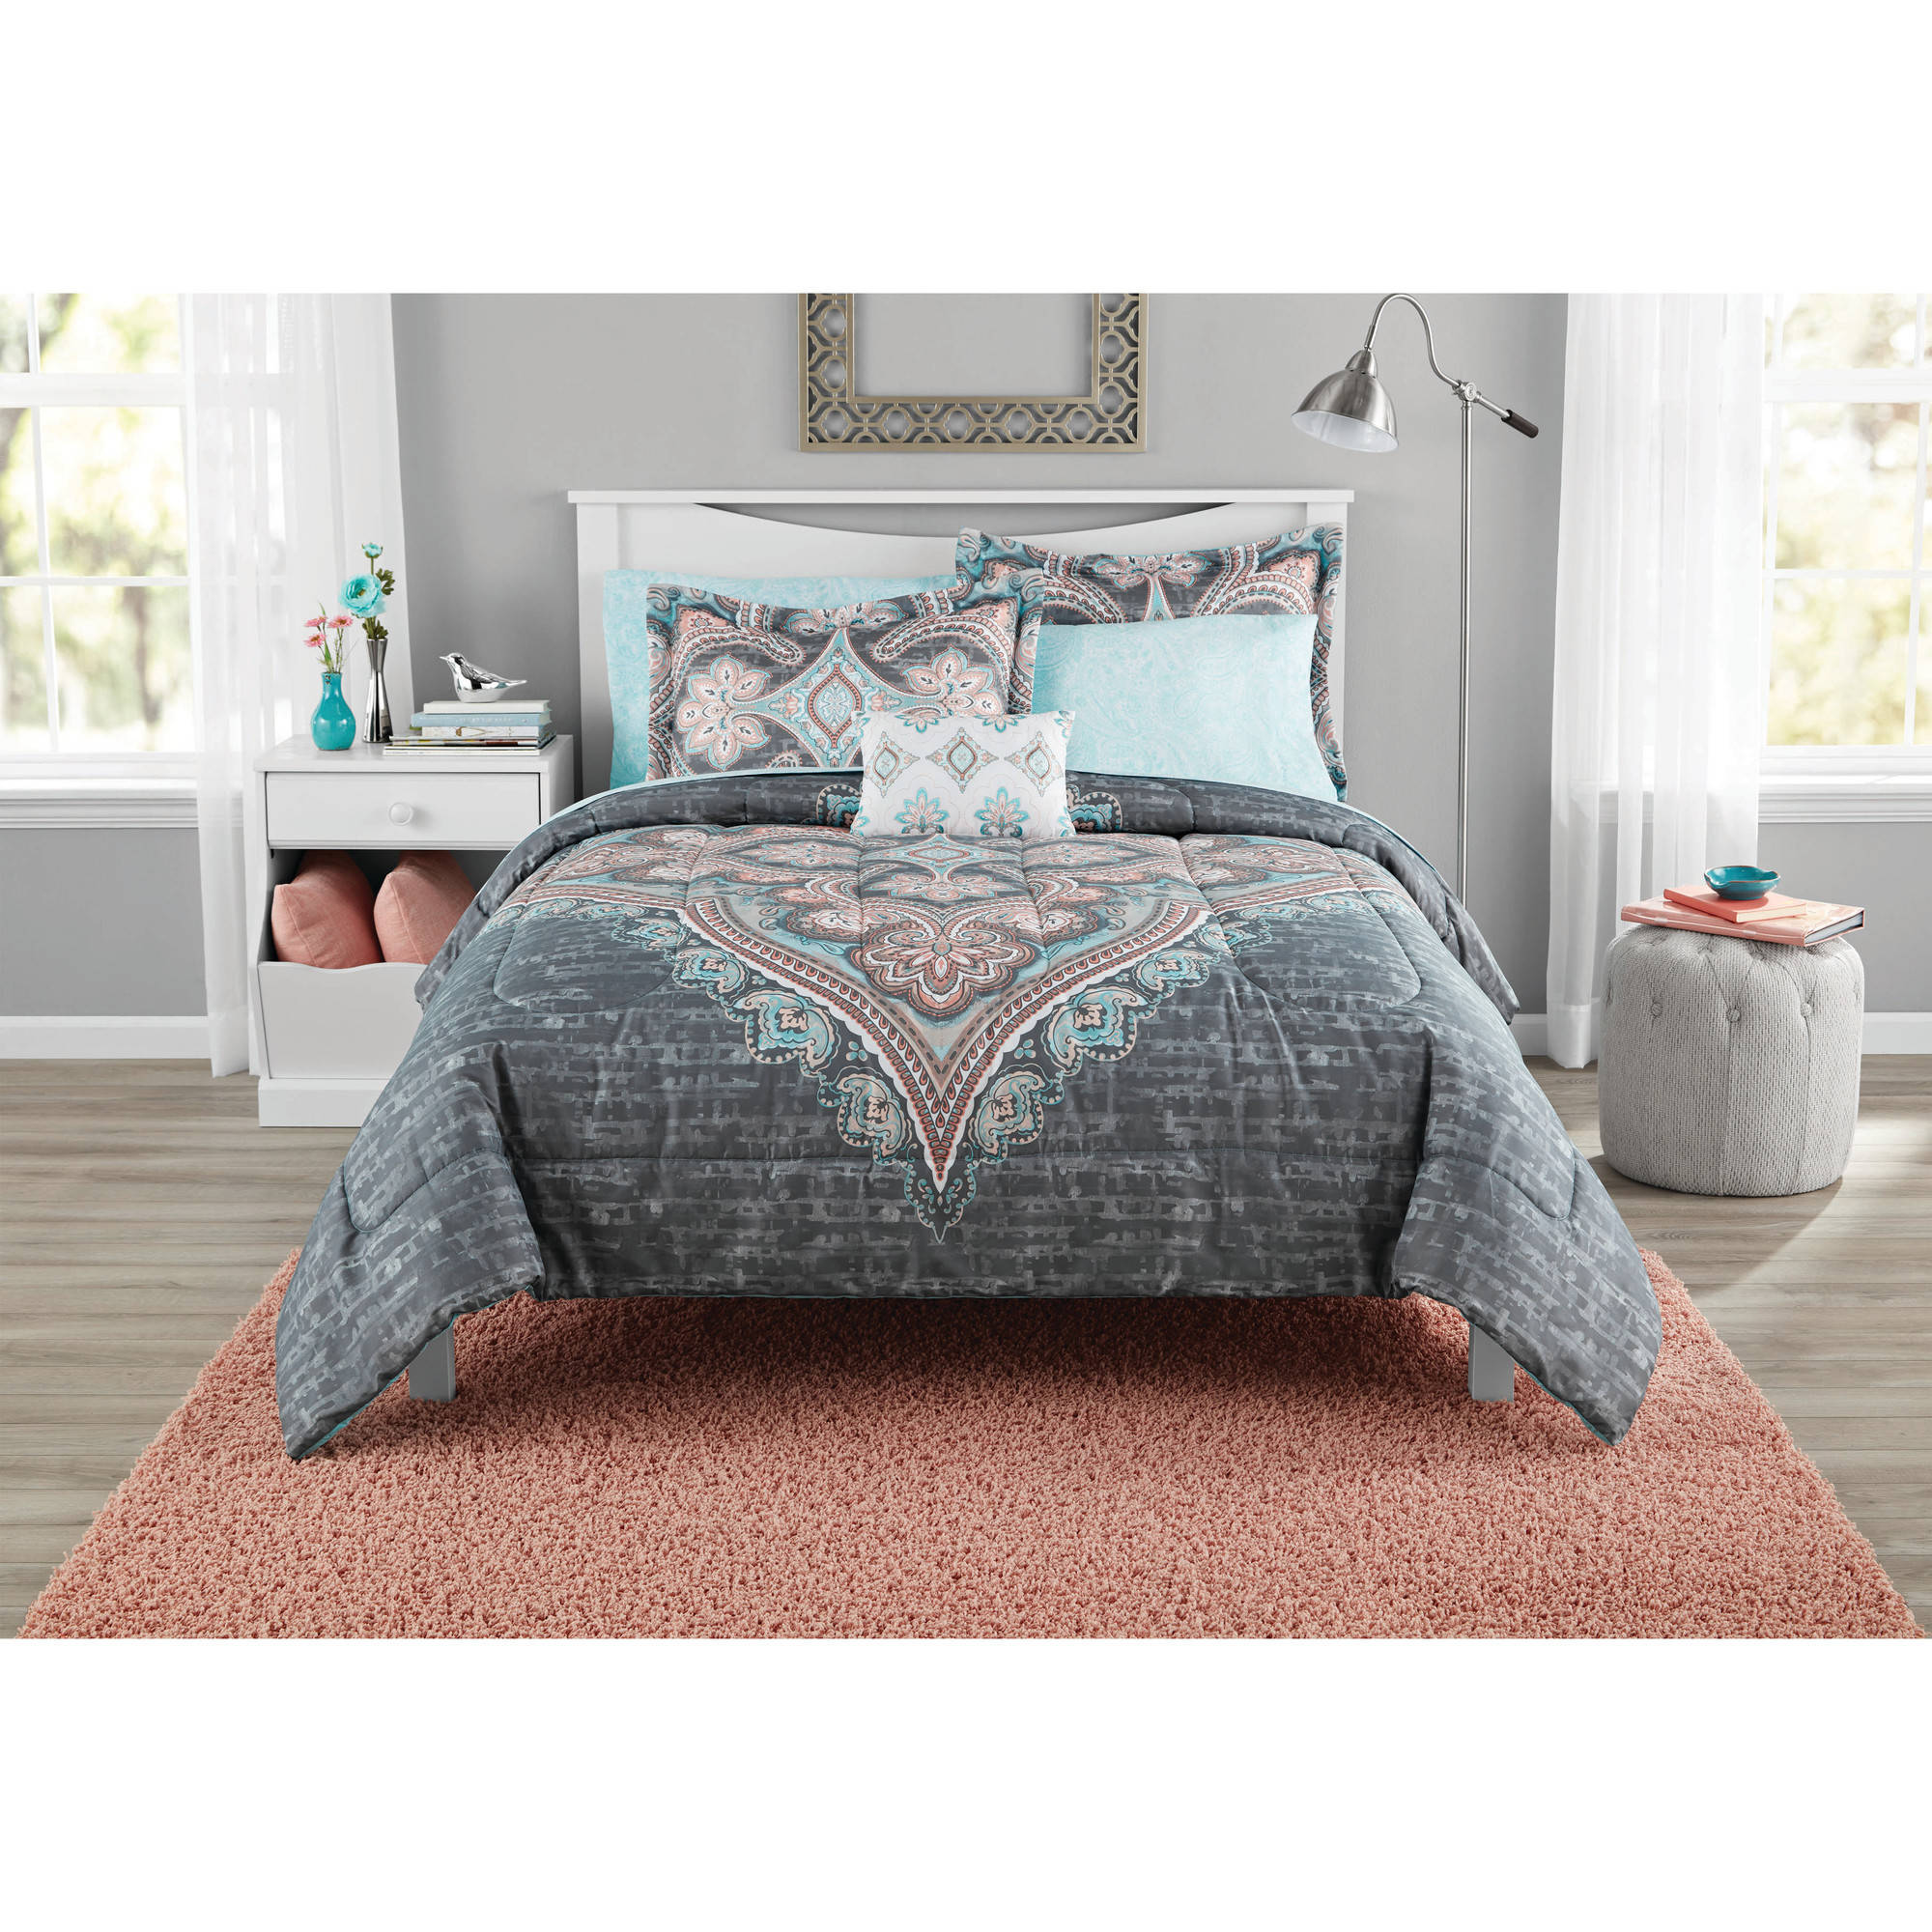 Mainstays Bed in a Bag Global Diamond Comforter Set, 6 Piece